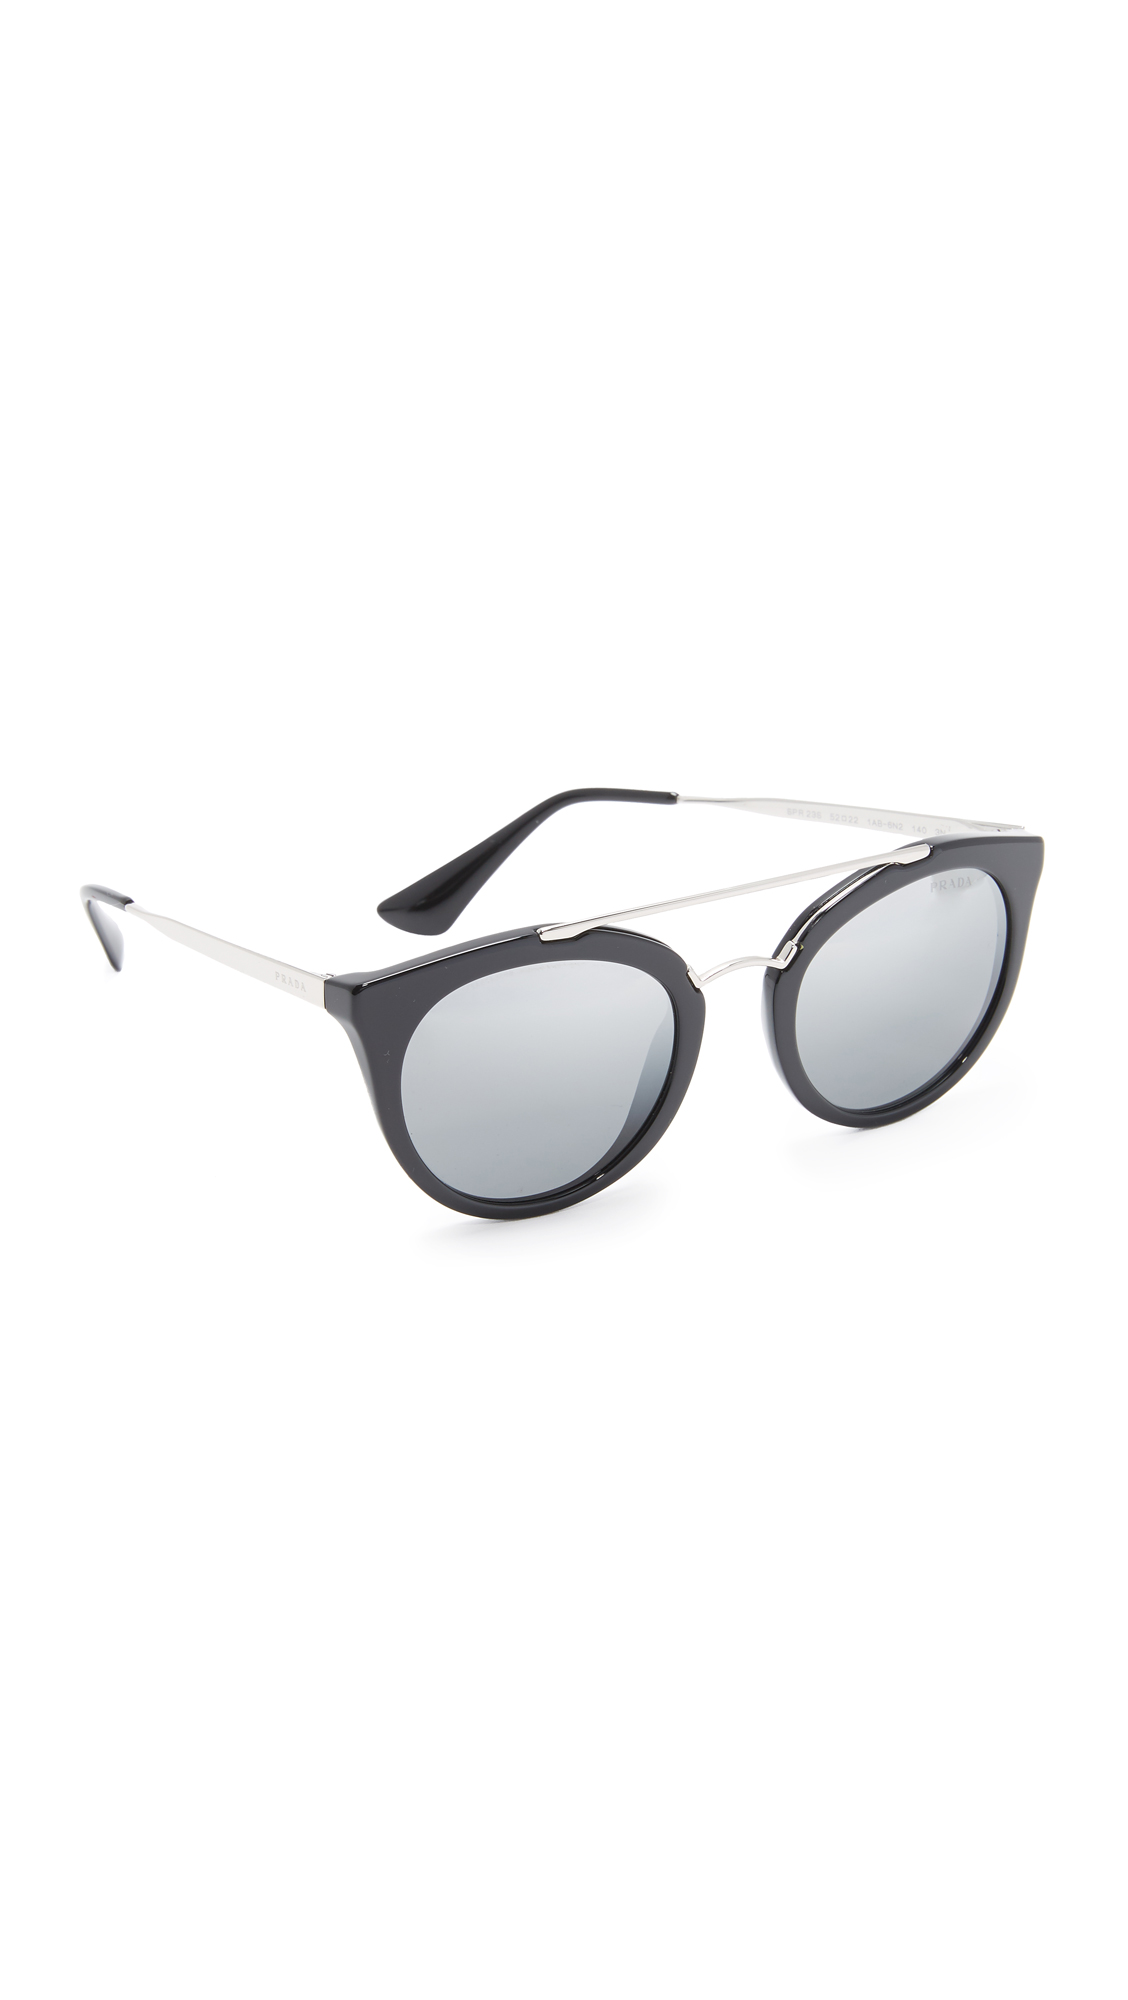 Prada Round Aviator Mirrored Sunglasses - Black/Silver at Shopbop